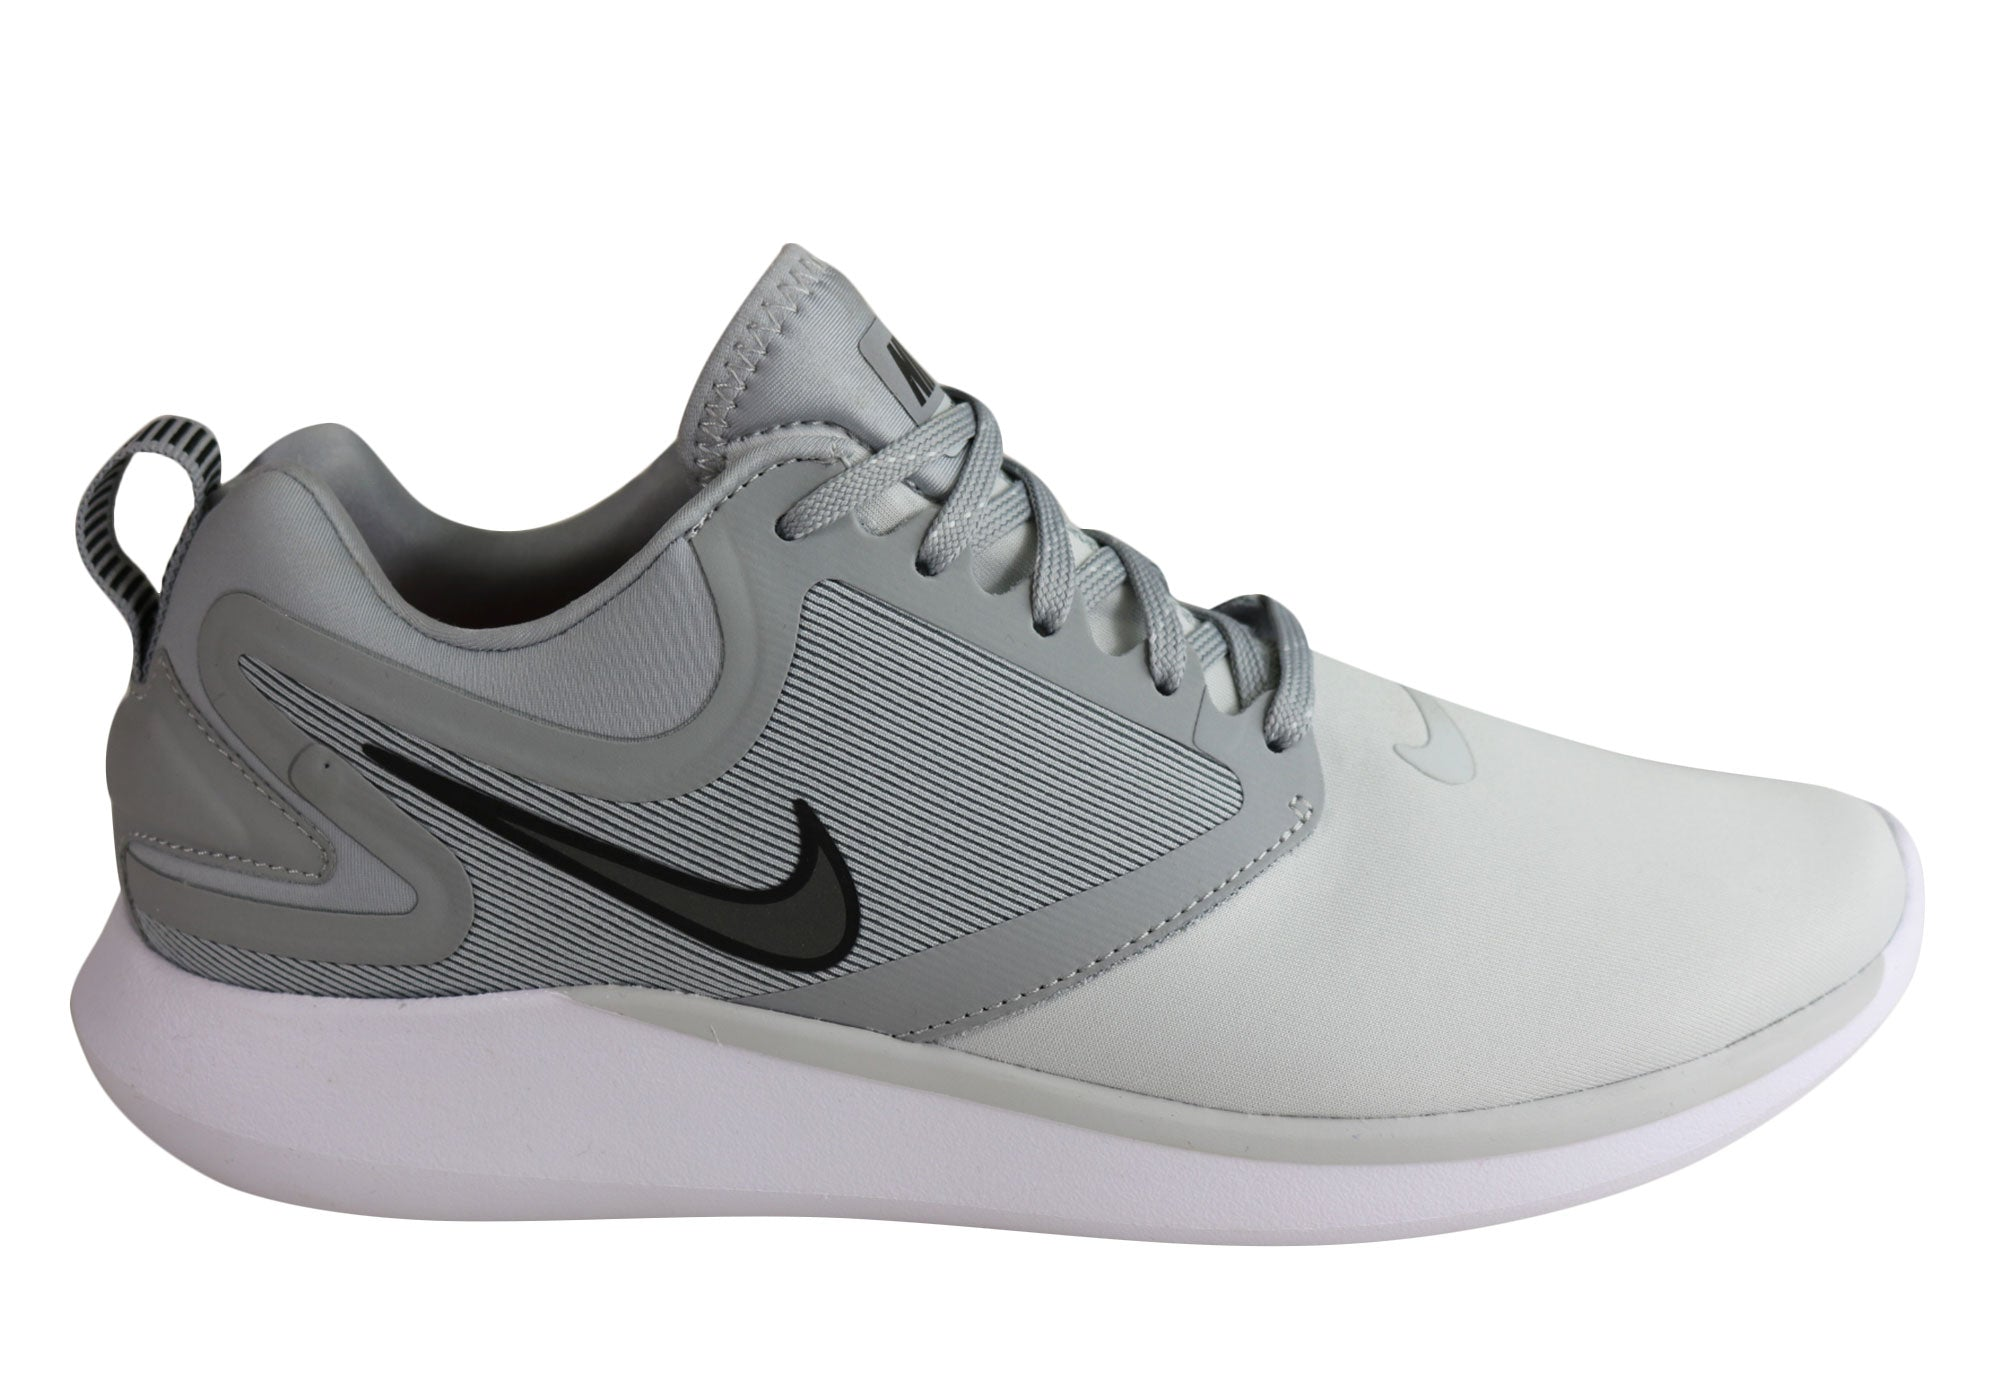 Details about Mens Nike Lunarsolo Comfortable Lace Up Shoes ModeShoesAU